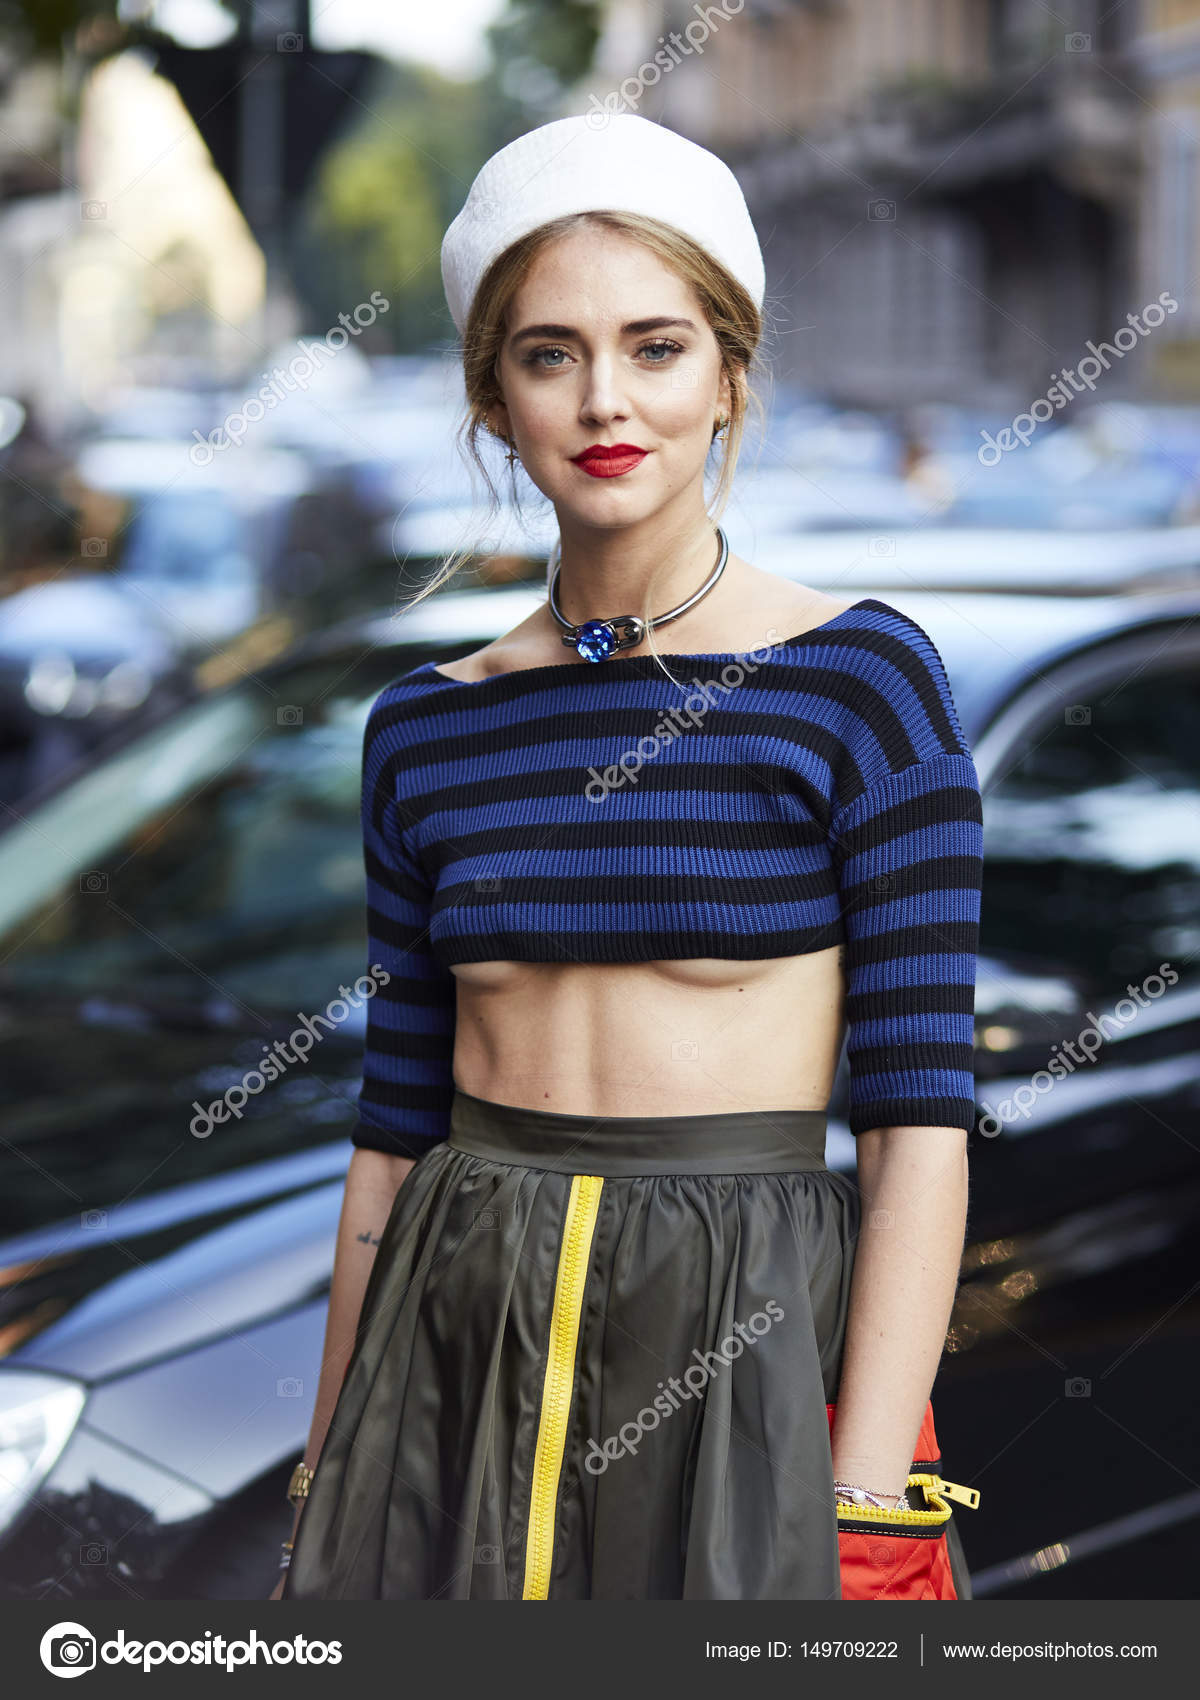 Images Chiara Ferragni nudes (73 photos), Topless, Leaked, Boobs, lingerie 2017